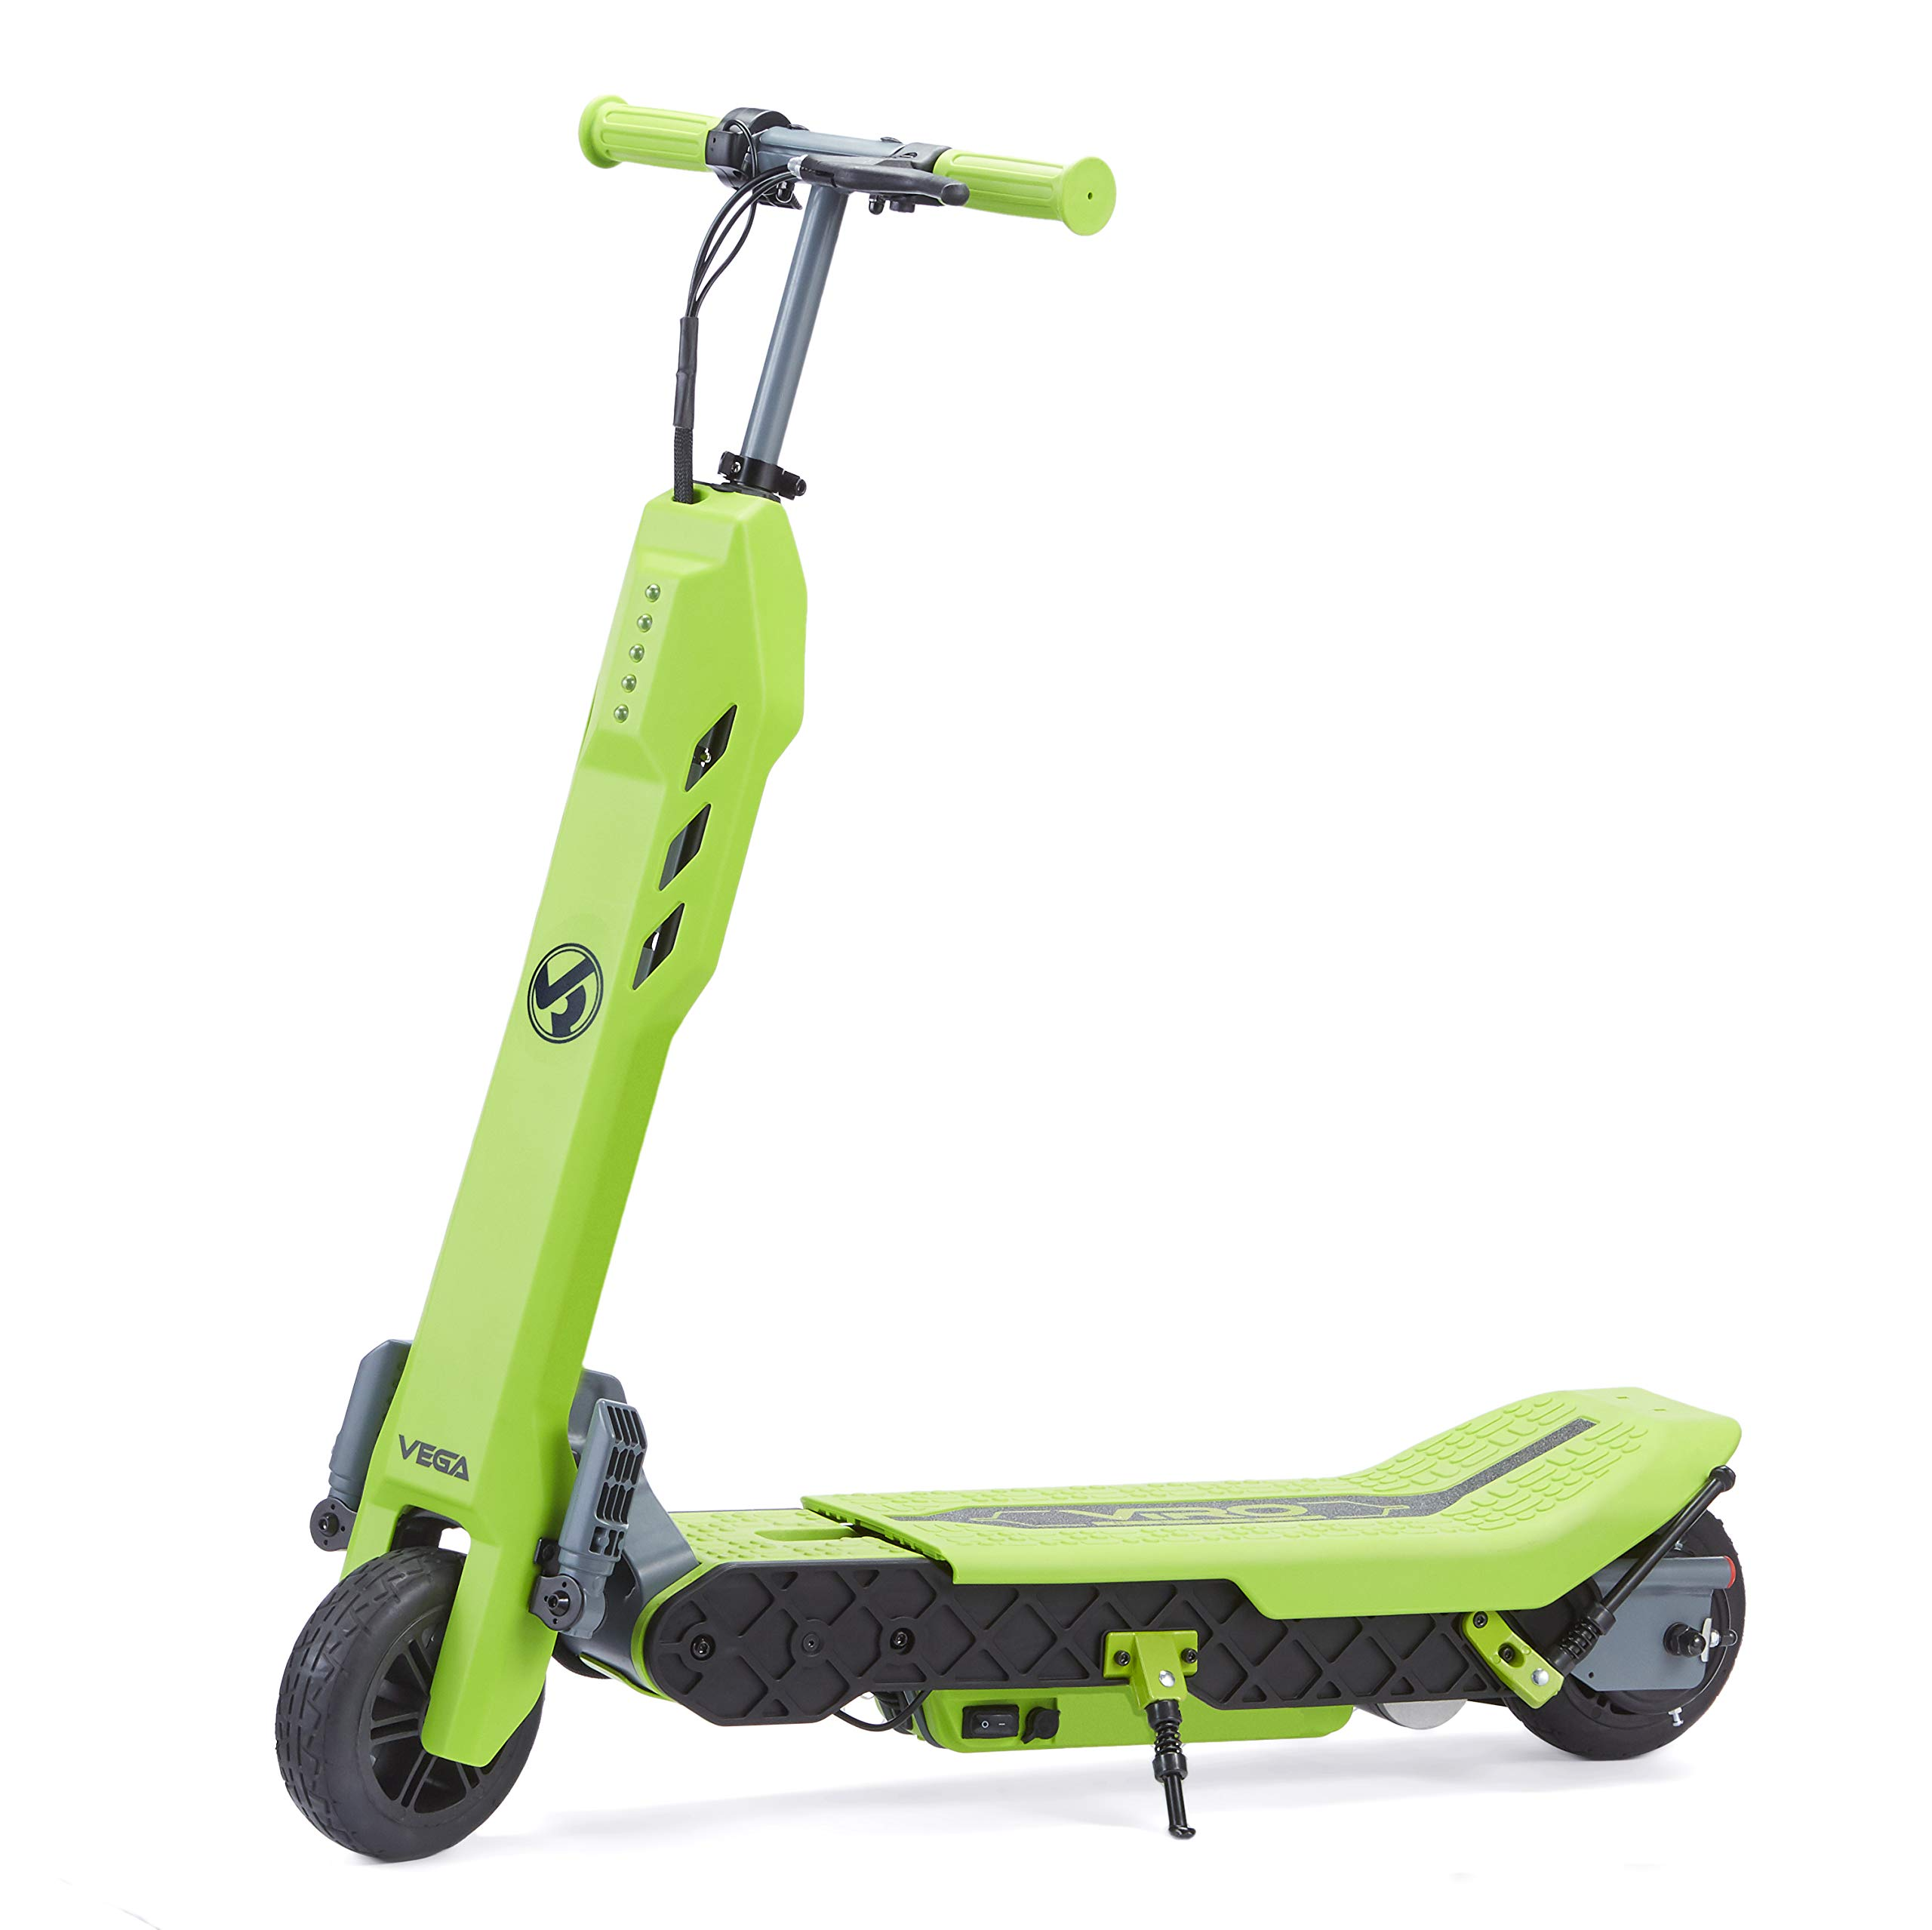 Viro Rides Vega Transforming 2-in-1 Electric Scooter and Mini Bike UL 2272 Certified by Viro Rides (Image #5)